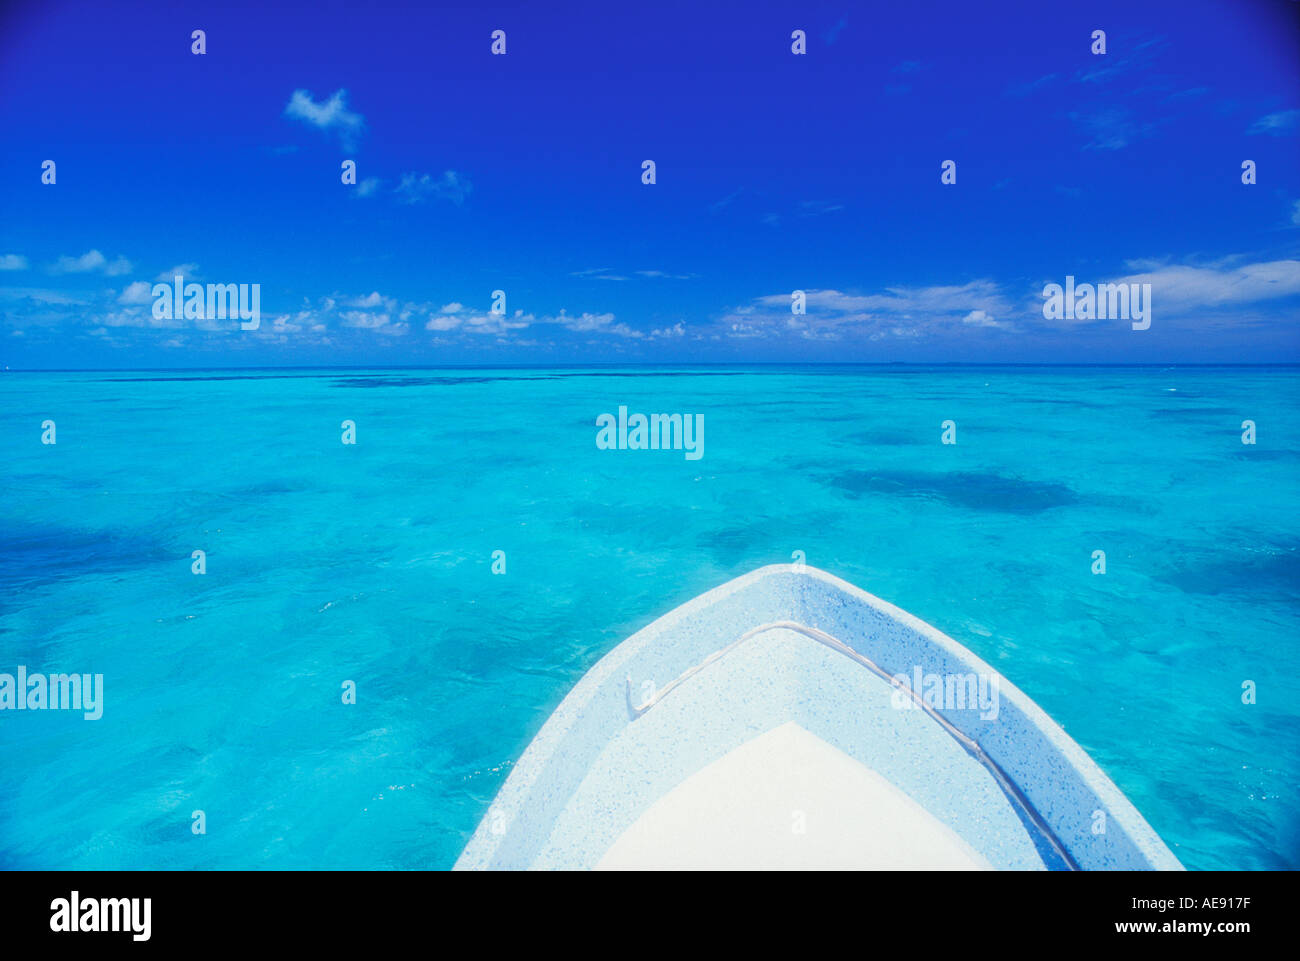 Bow of boat over shallow water in Belize Caribbean Property released image - Stock Image